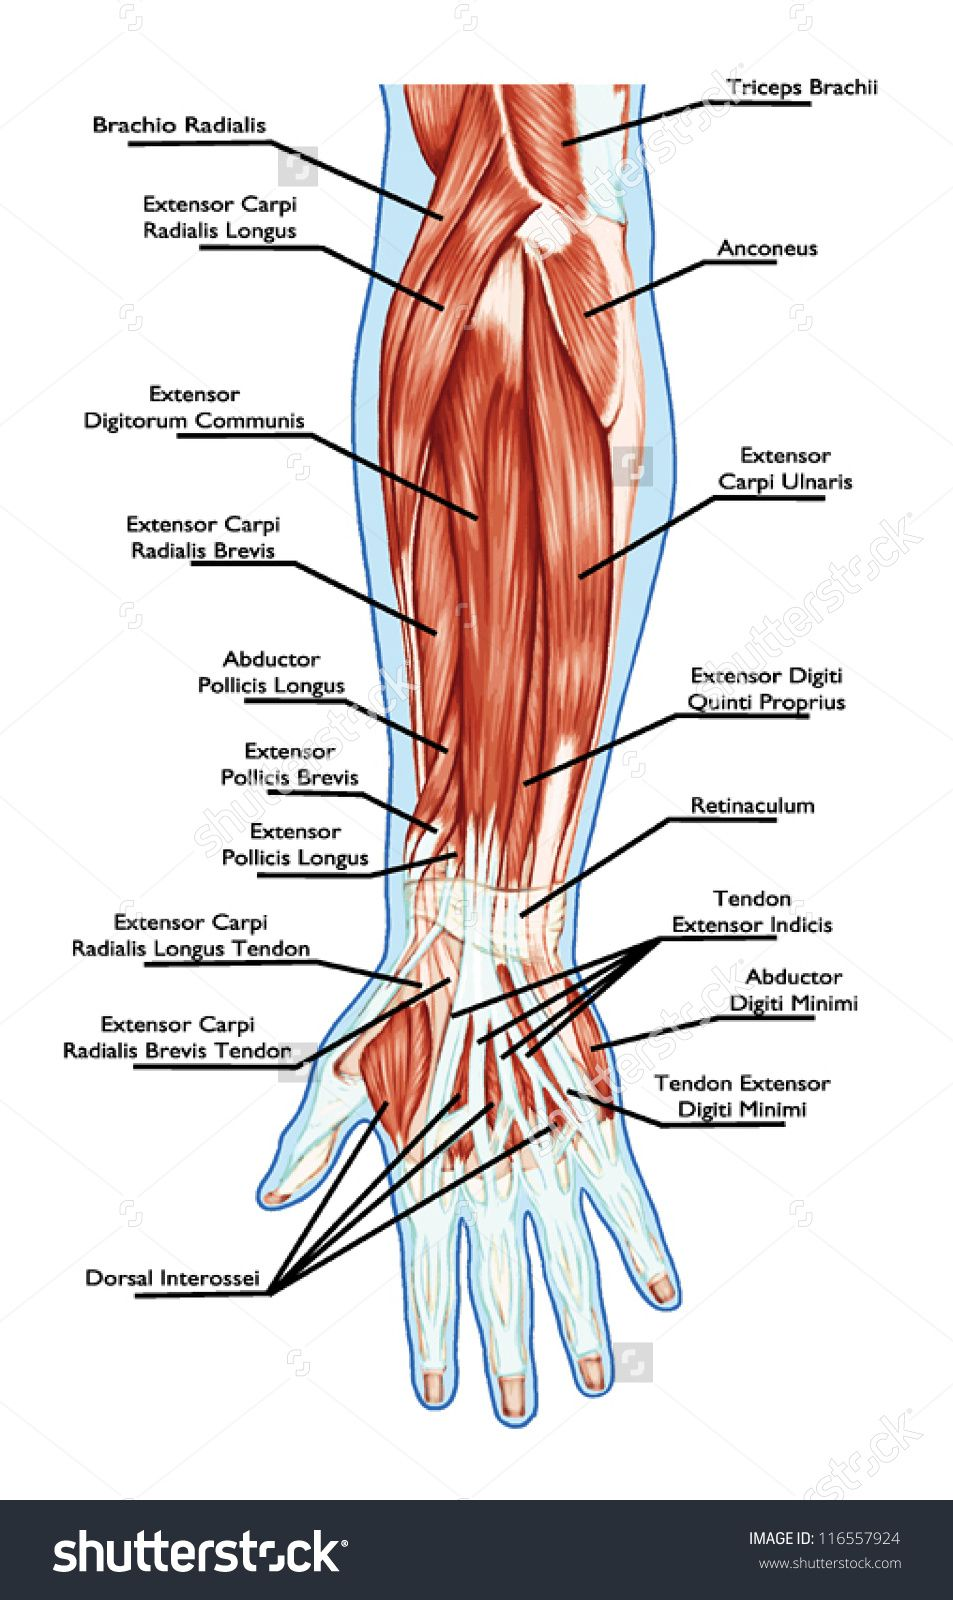 hight resolution of anatomy of muscular system hand forearm palm muscle diagram arm tendons ligaments diagram arm tendons ligaments